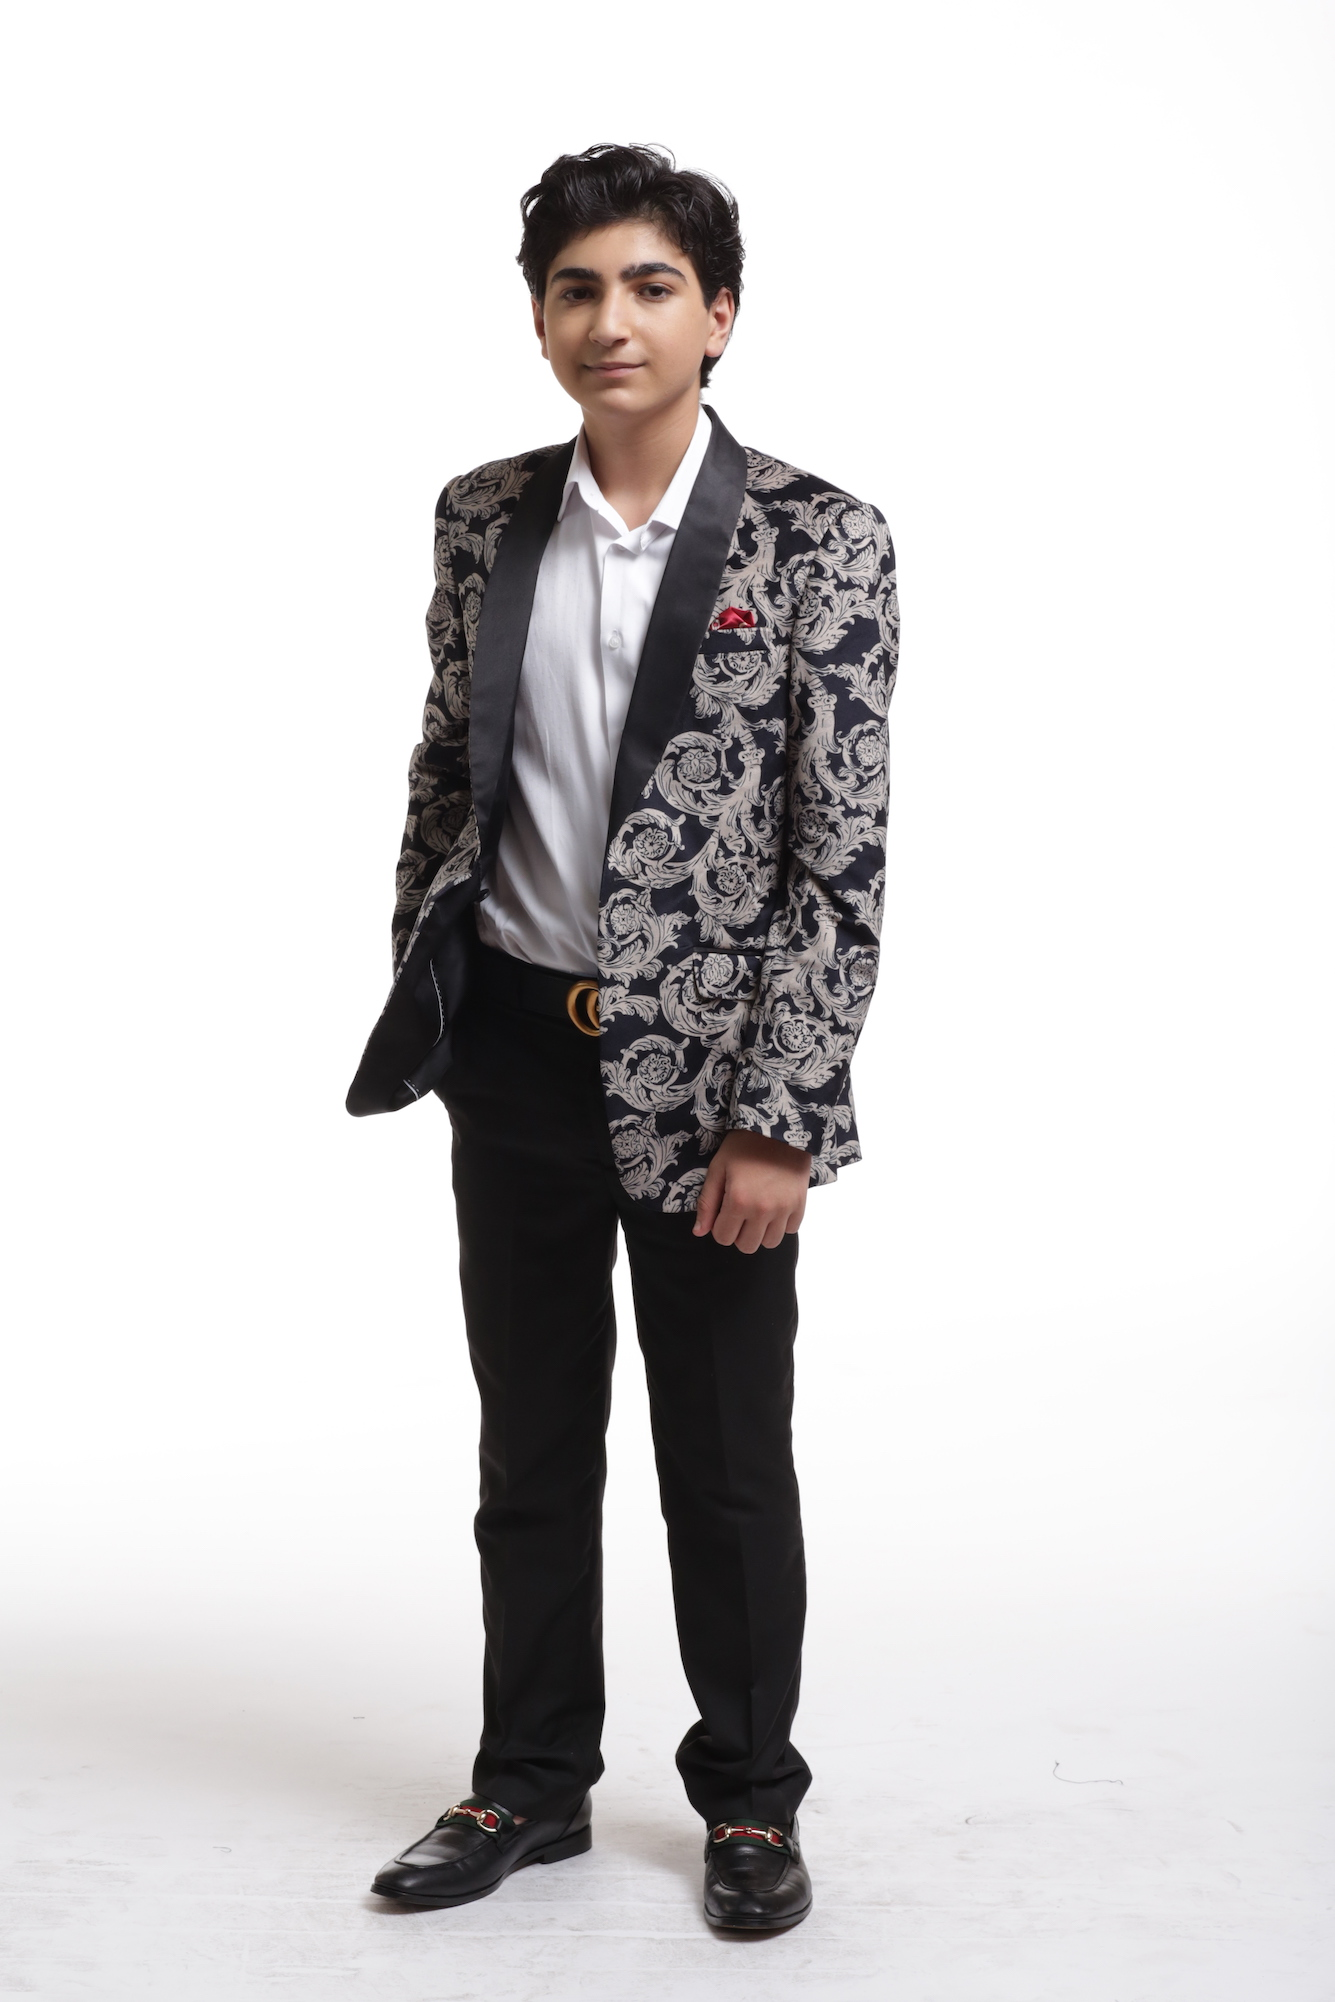 Royal Floral Boy's Blazer/Jacket CEBBW1716B